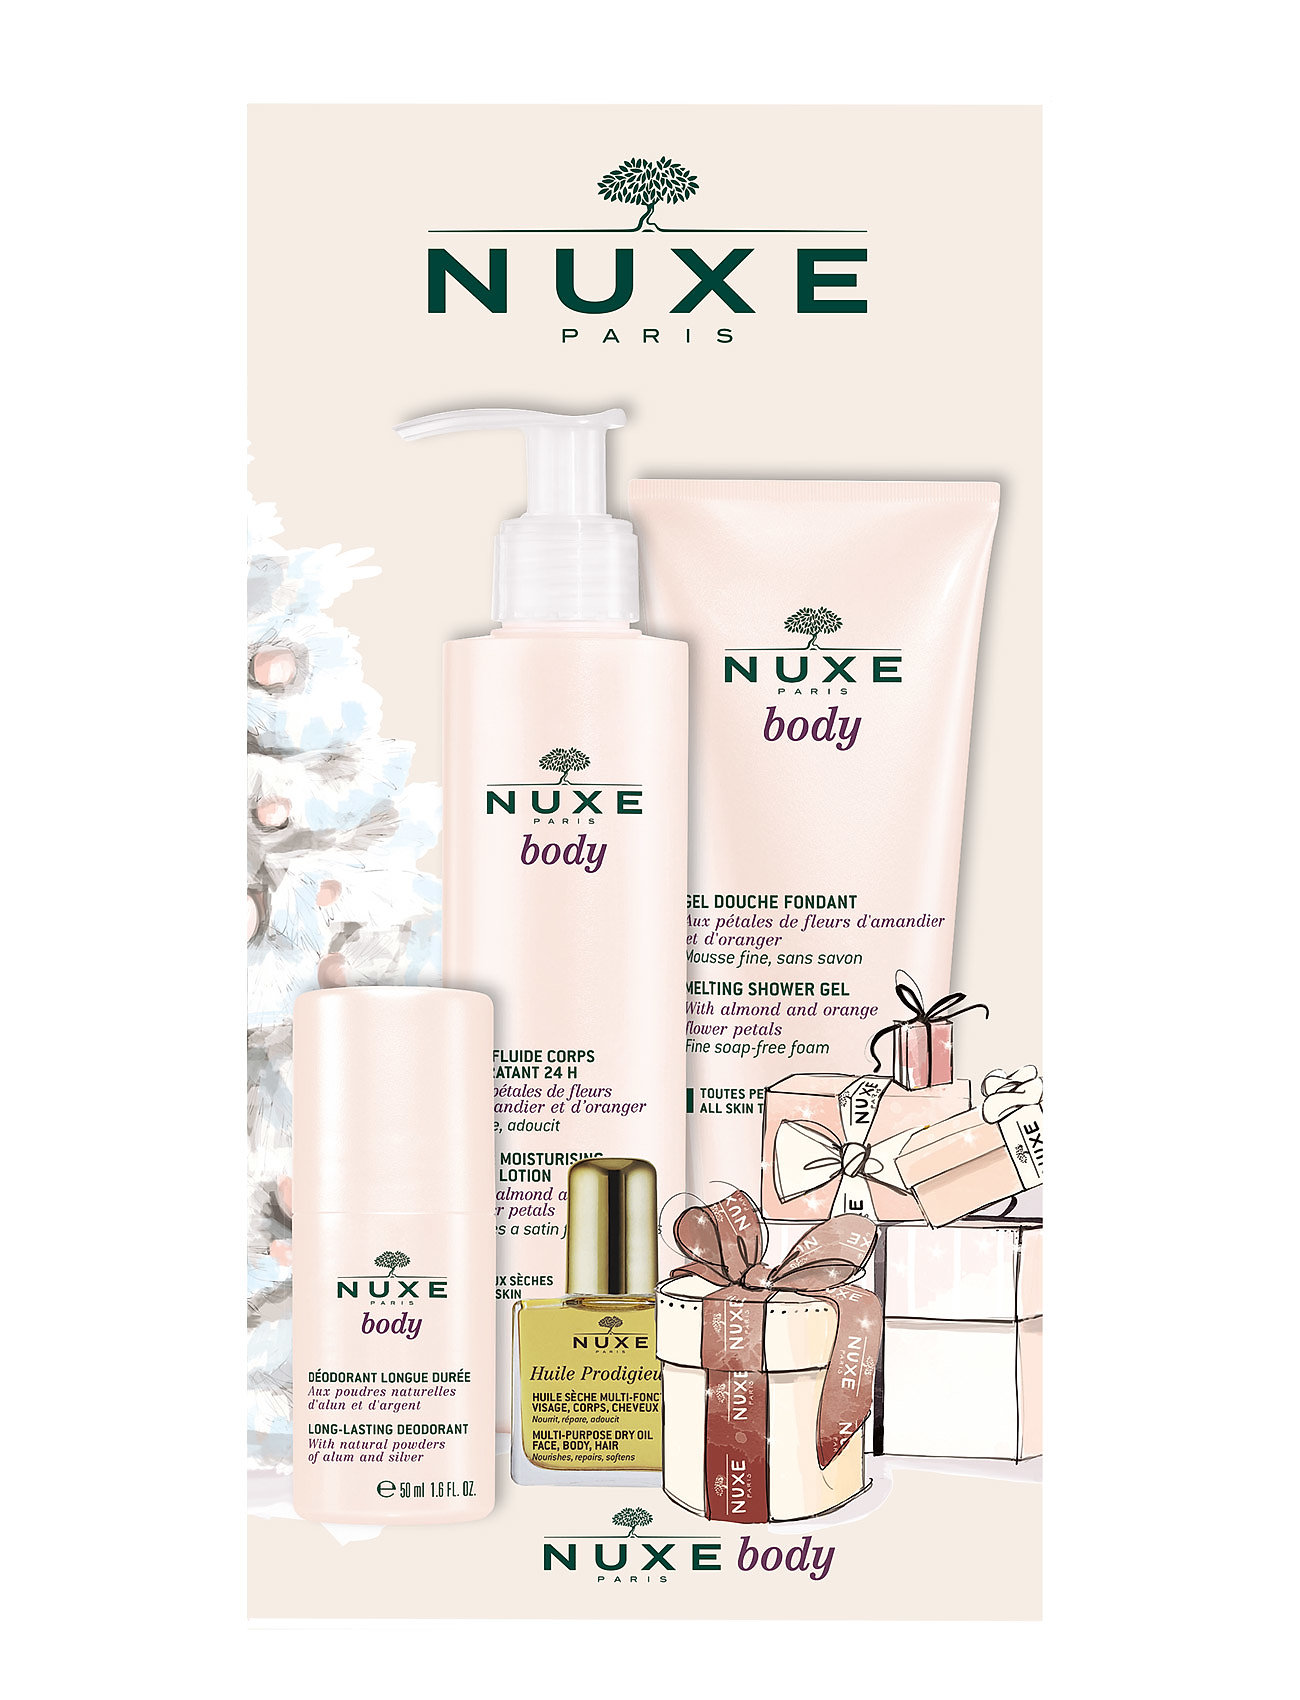 nuxe – Nuxe body shower gel 200 ml, body lotion 200 ml & deodorant på boozt.com dk